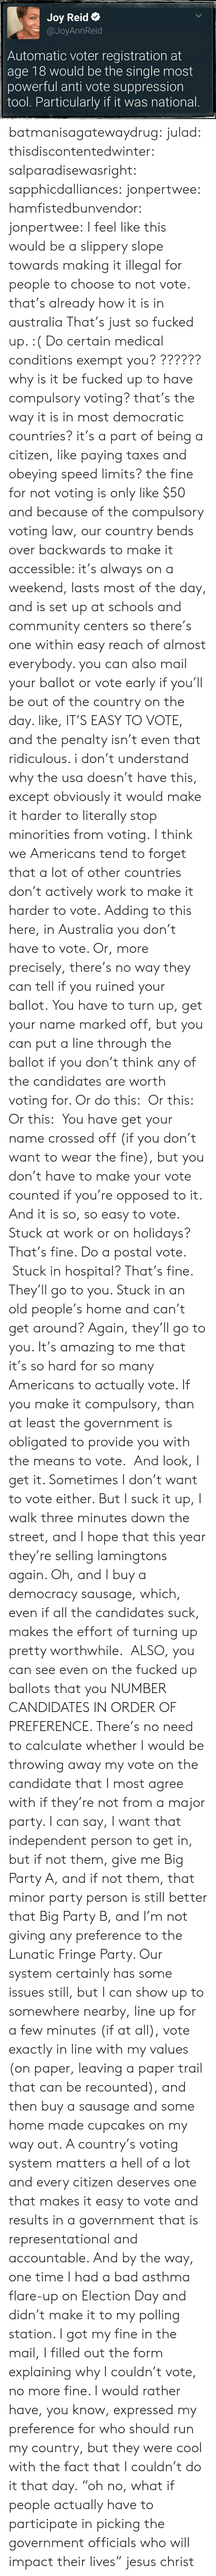 Bad, Community, and Jesus: Joy Reid  @JoyAnnReid  Automatic voter registration at  age 18 would be the single most  powerful anti vote suppression  tool. Particularly if it was national batmanisagatewaydrug:  julad:  thisdiscontentedwinter:  salparadisewasright:  sapphicdalliances:  jonpertwee:  hamfistedbunvendor:   jonpertwee: I feel like this would be a slippery slope towards making it illegal for people to choose to not vote. that's already how it is in australia   That's just so fucked up. :( Do certain medical conditions exempt you?  ?????? why is it be fucked up to have compulsory voting? that's the way it is in most democratic countries? it's a part of being a citizen, like paying taxes and obeying speed limits? the fine for not voting is only like $50 and because of the compulsory voting law, our country bends over backwards to make it accessible: it's always on a weekend, lasts most of the day, and is set up at schools and community centers so there's one within easy reach of almost everybody. you can also mail your ballot or vote early if you'll be out of the country on the day. like, IT'S EASY TO VOTE, and the penalty isn't even that ridiculous. i don't understand why the usa doesn't have this, except obviously it would make it harder to literally stop minorities from voting.  I think we Americans tend to forget that a lot of other countries don't actively work to make it harder to vote.  Adding to this here, in Australia you don't have to vote. Or, more precisely, there's no way they can tell if you ruined your ballot.You have to turn up, get your name marked off, but you can put a line through the ballot if you don't think any of the candidates are worth voting for. Or do this: Or this:  Or this: You have get your name crossed off (if you don't want to wear the fine), but you don't have to make your vote counted if you're opposed to it. And it is so, so easy to vote. Stuck at work or on holidays? That's fine. Do a postal vote. Stuck in hospital? That's